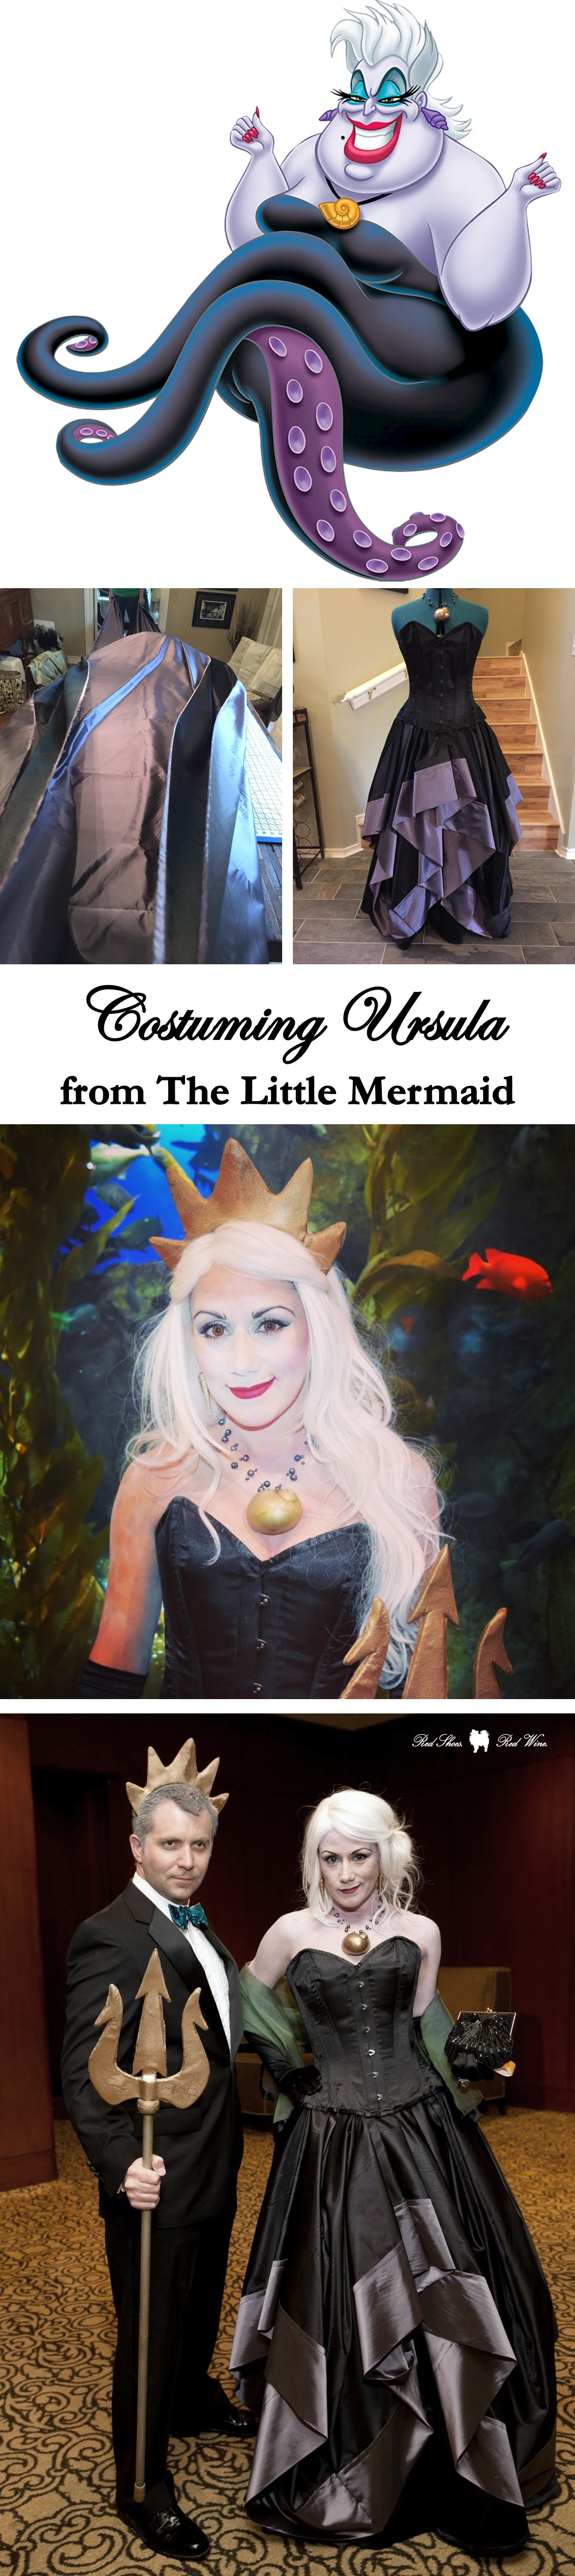 Costuming ursula from disneys the little mermaid cosplay costuming ursula from disneys the little mermaid cosplay costume halloween diy solutioingenieria Images